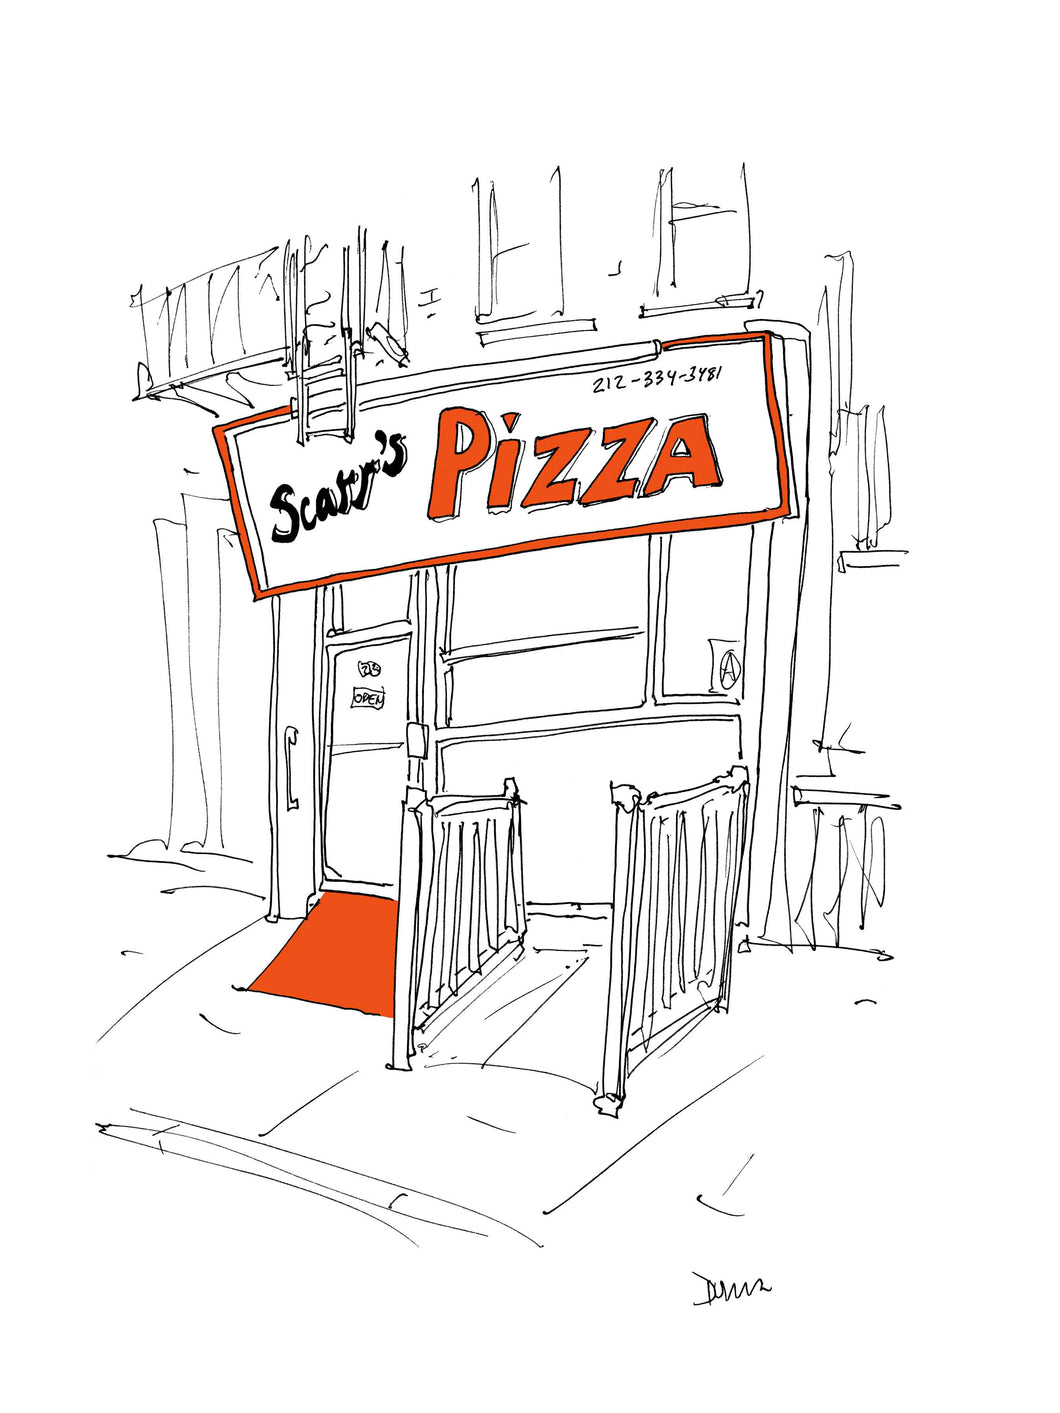 Scarr's Pizza